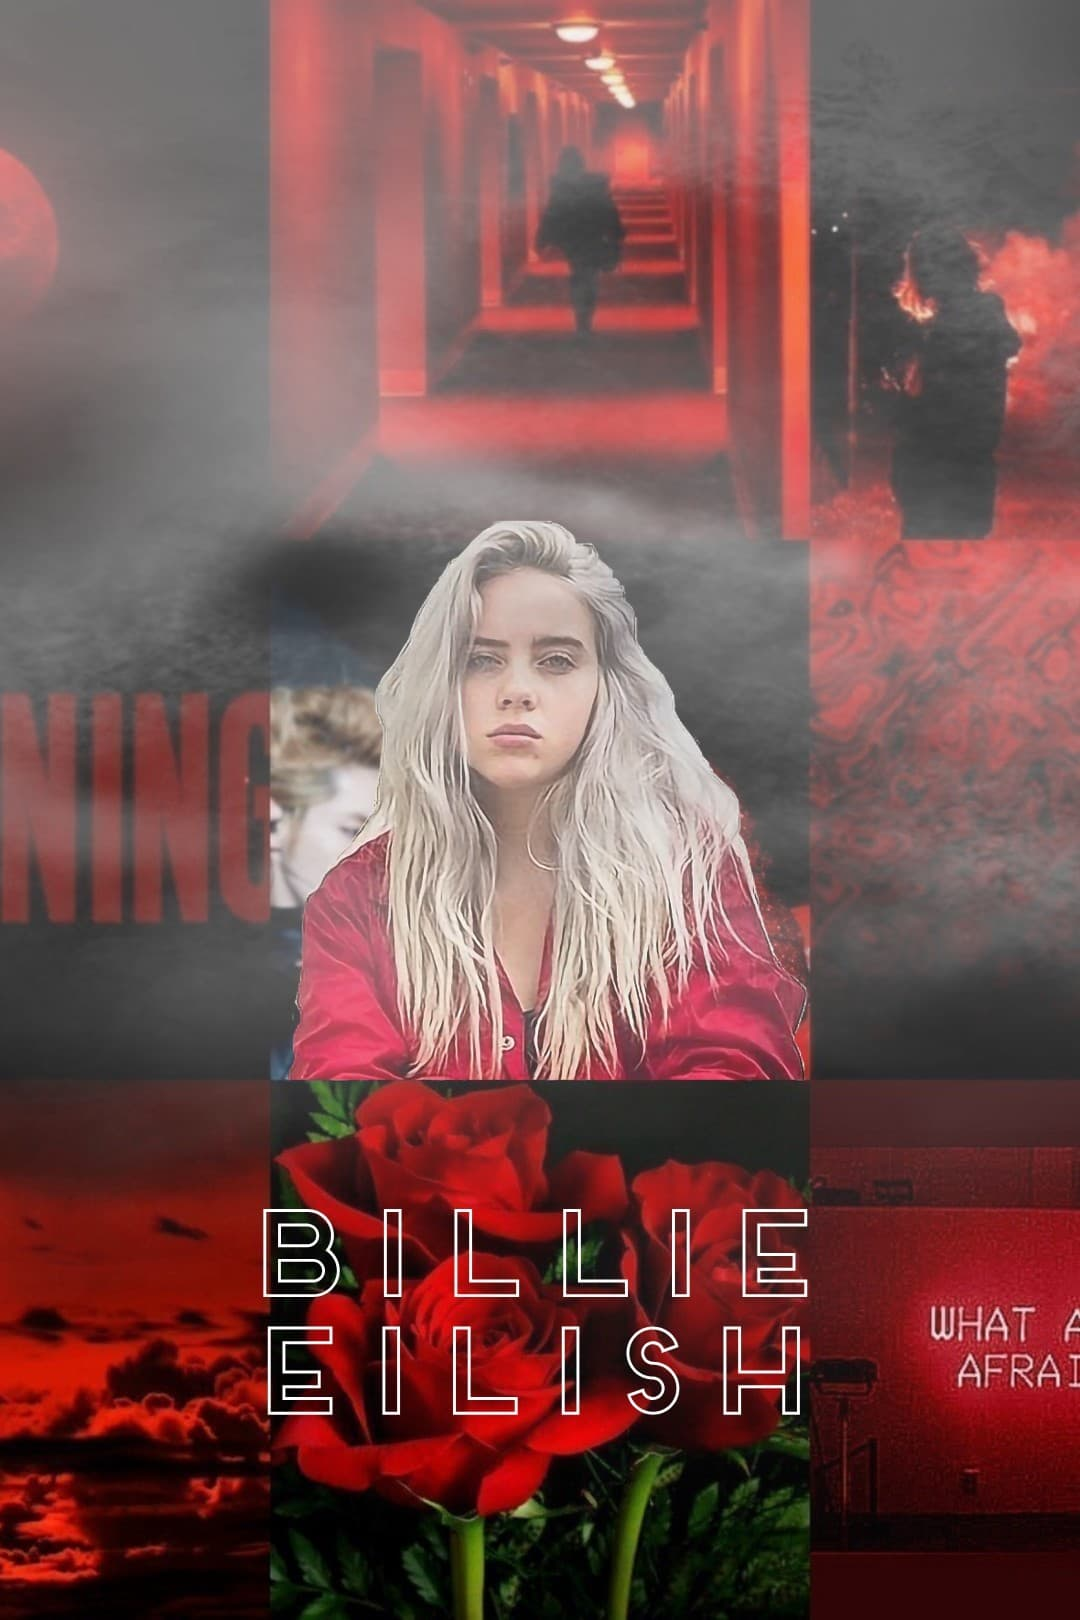 tAp ThE rEd LiPs👄 who can make the best remix of this? i don't i guess we will have to find out. who ever makes the best remix will get a spam and a shout out. LOVE YOU GUYS!!❤